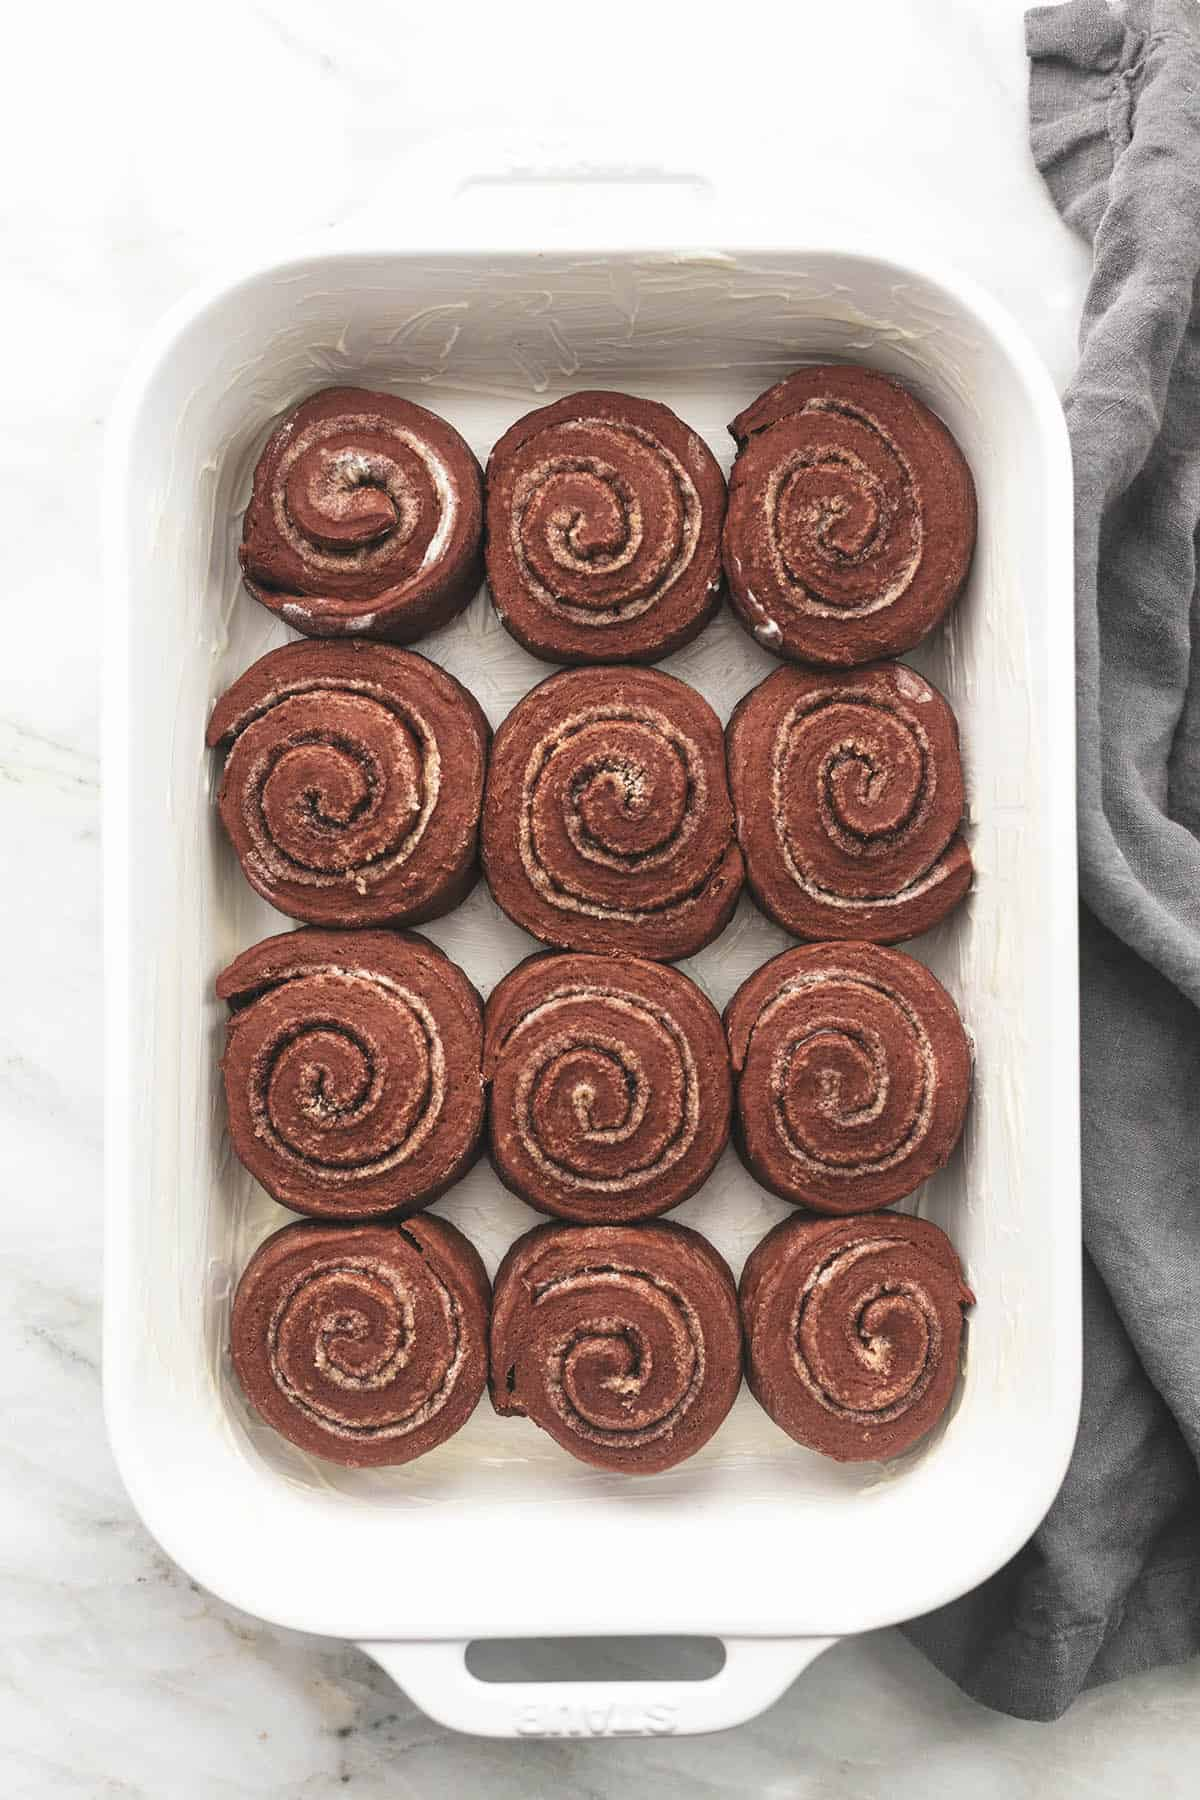 top view of unbaked chocolate cinnamon rolls in a baking pan.